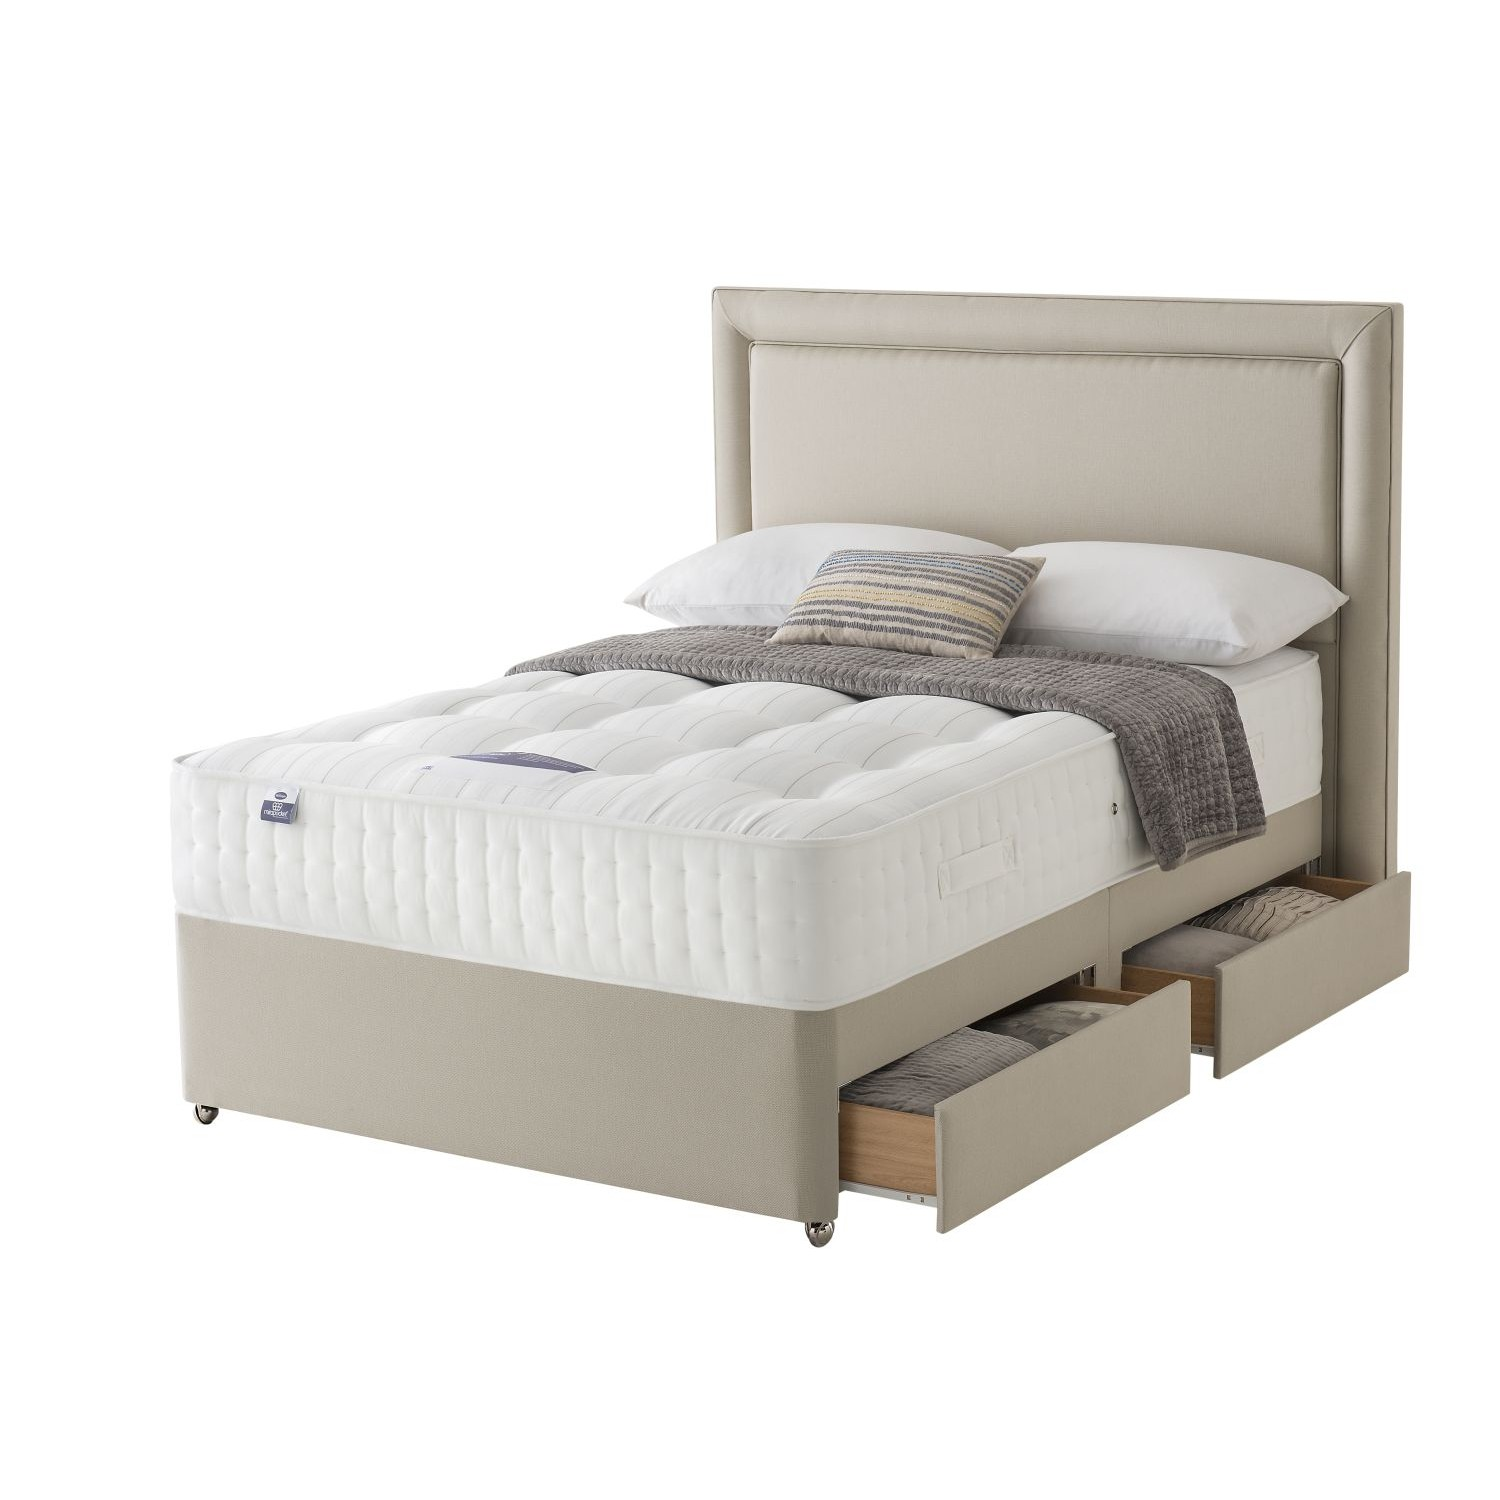 Silentnight shipley platform top 4 drawer divan set double for Silentnight divan